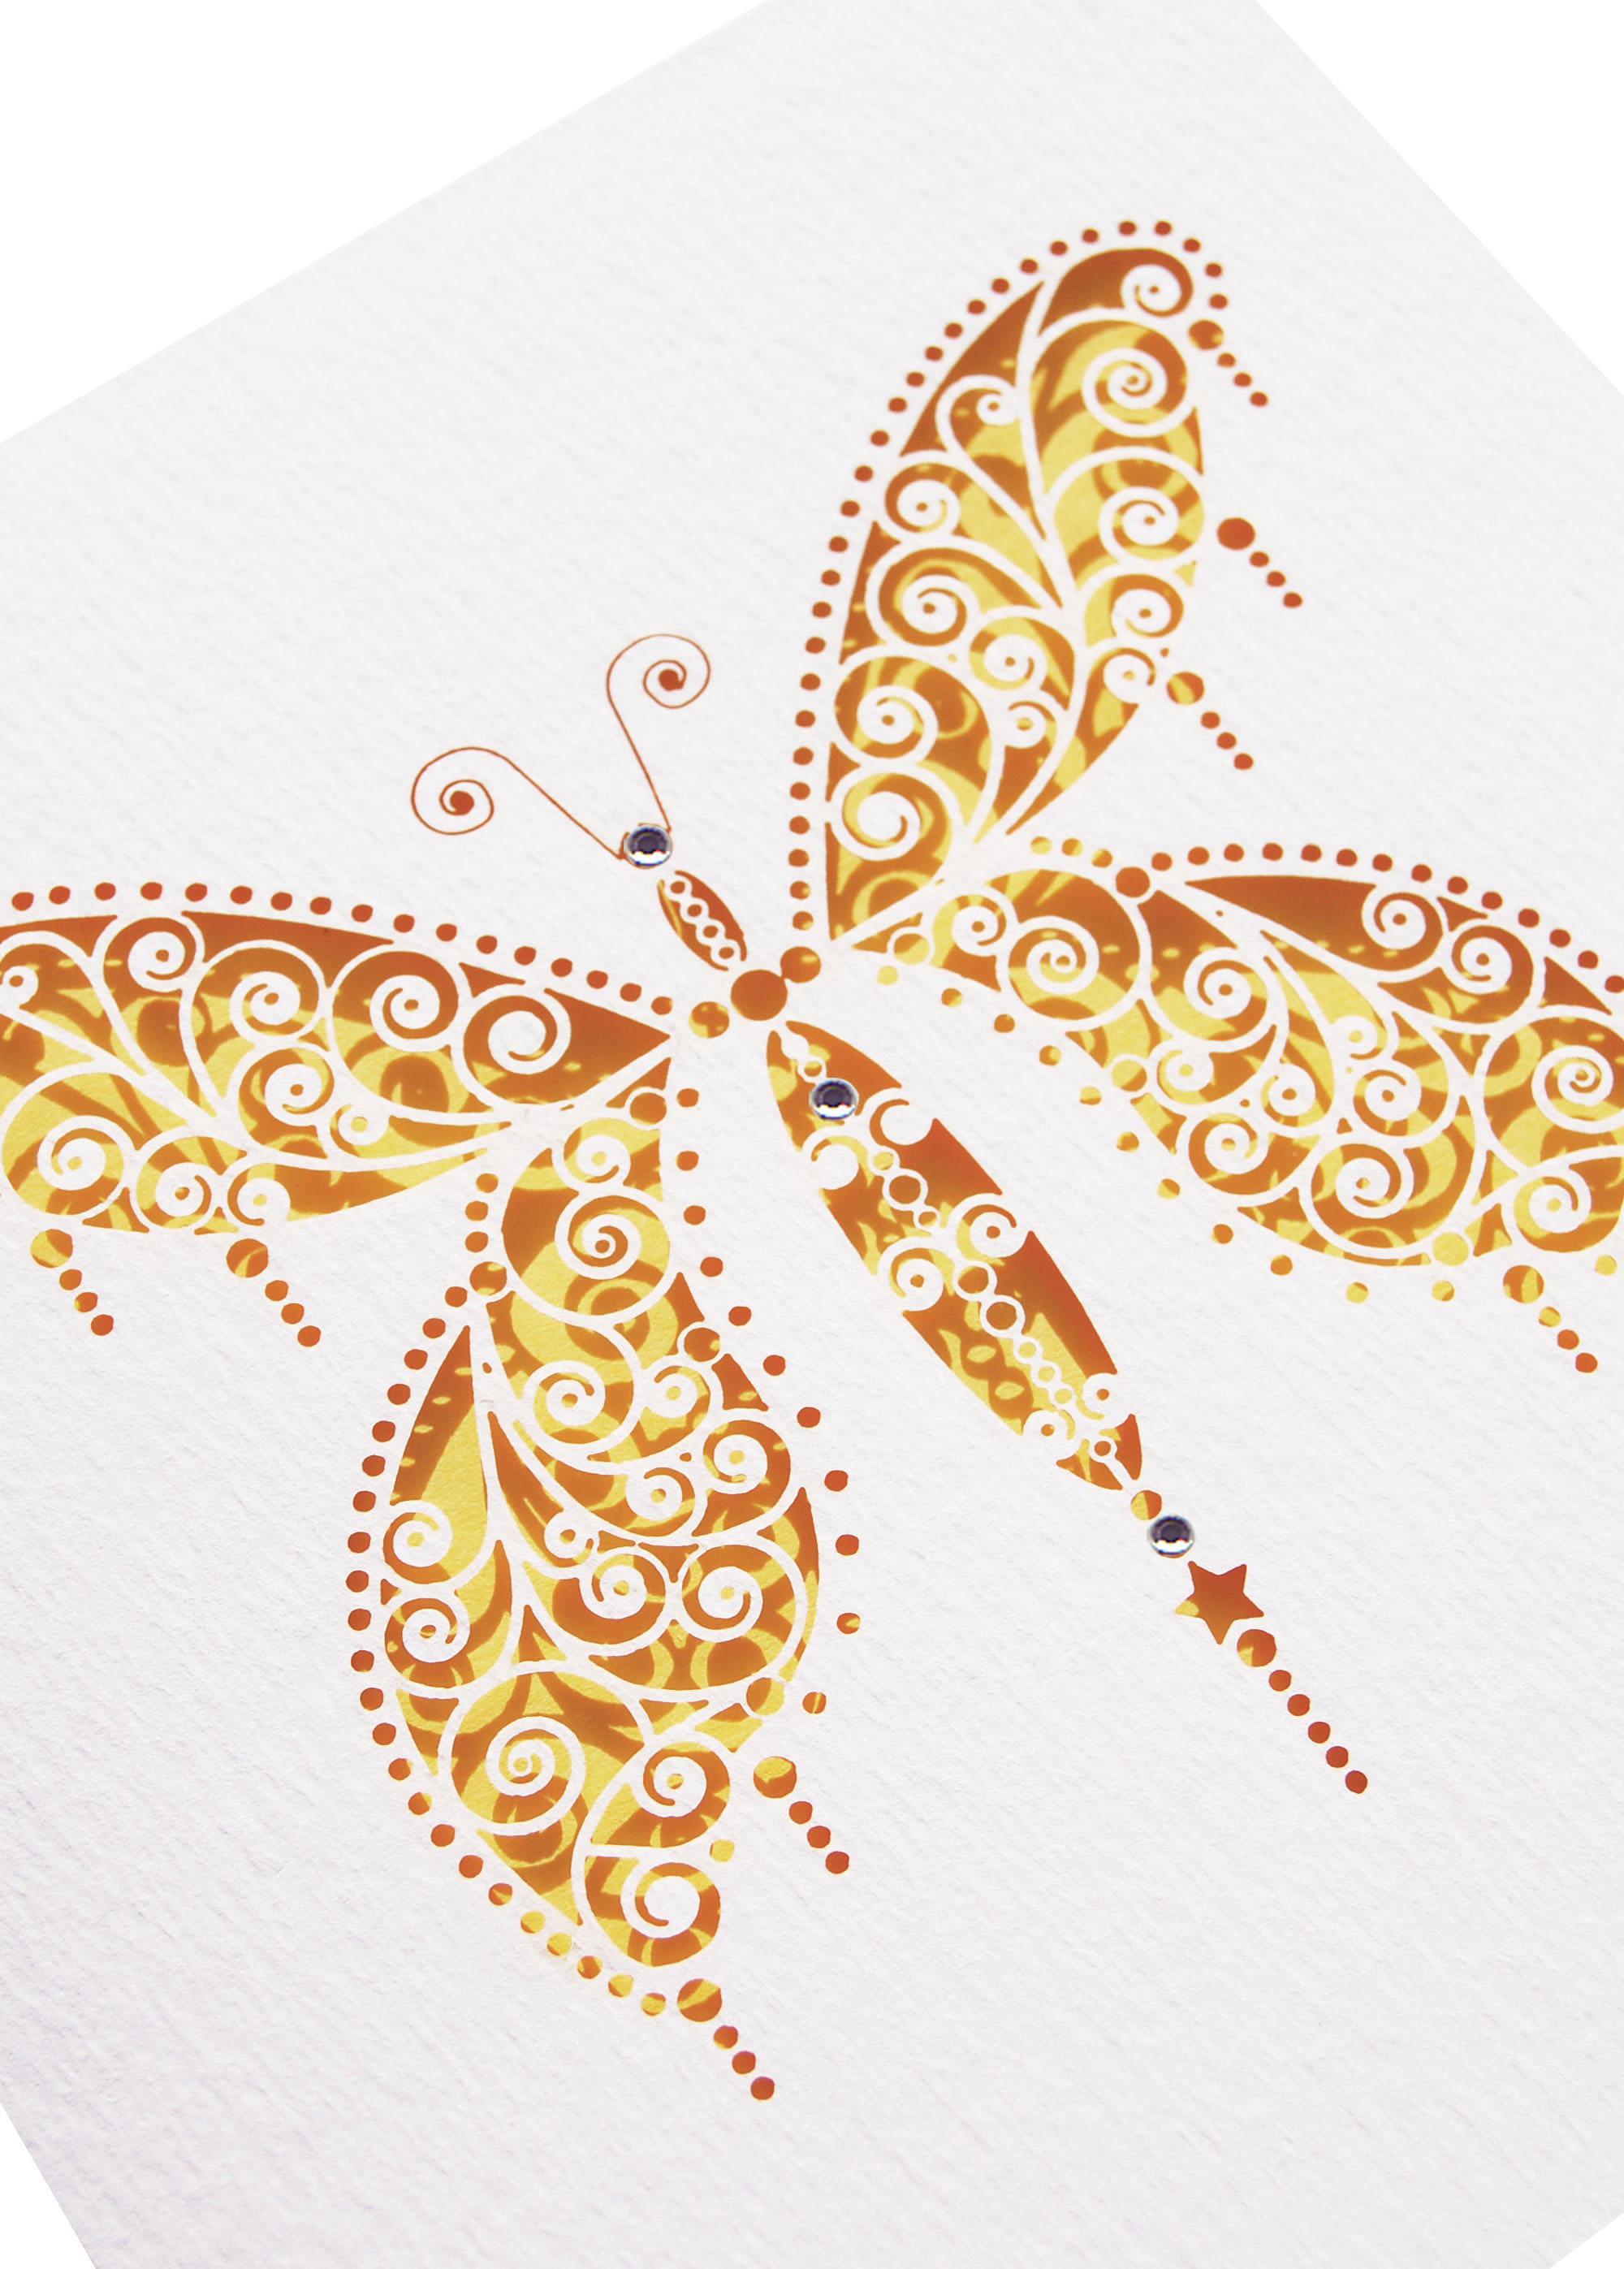 Buttercup Yellow Butterfly Menu from www.hummingbirdcards.co.uk Prices from £3.25 DIY and £4.15 Ready made